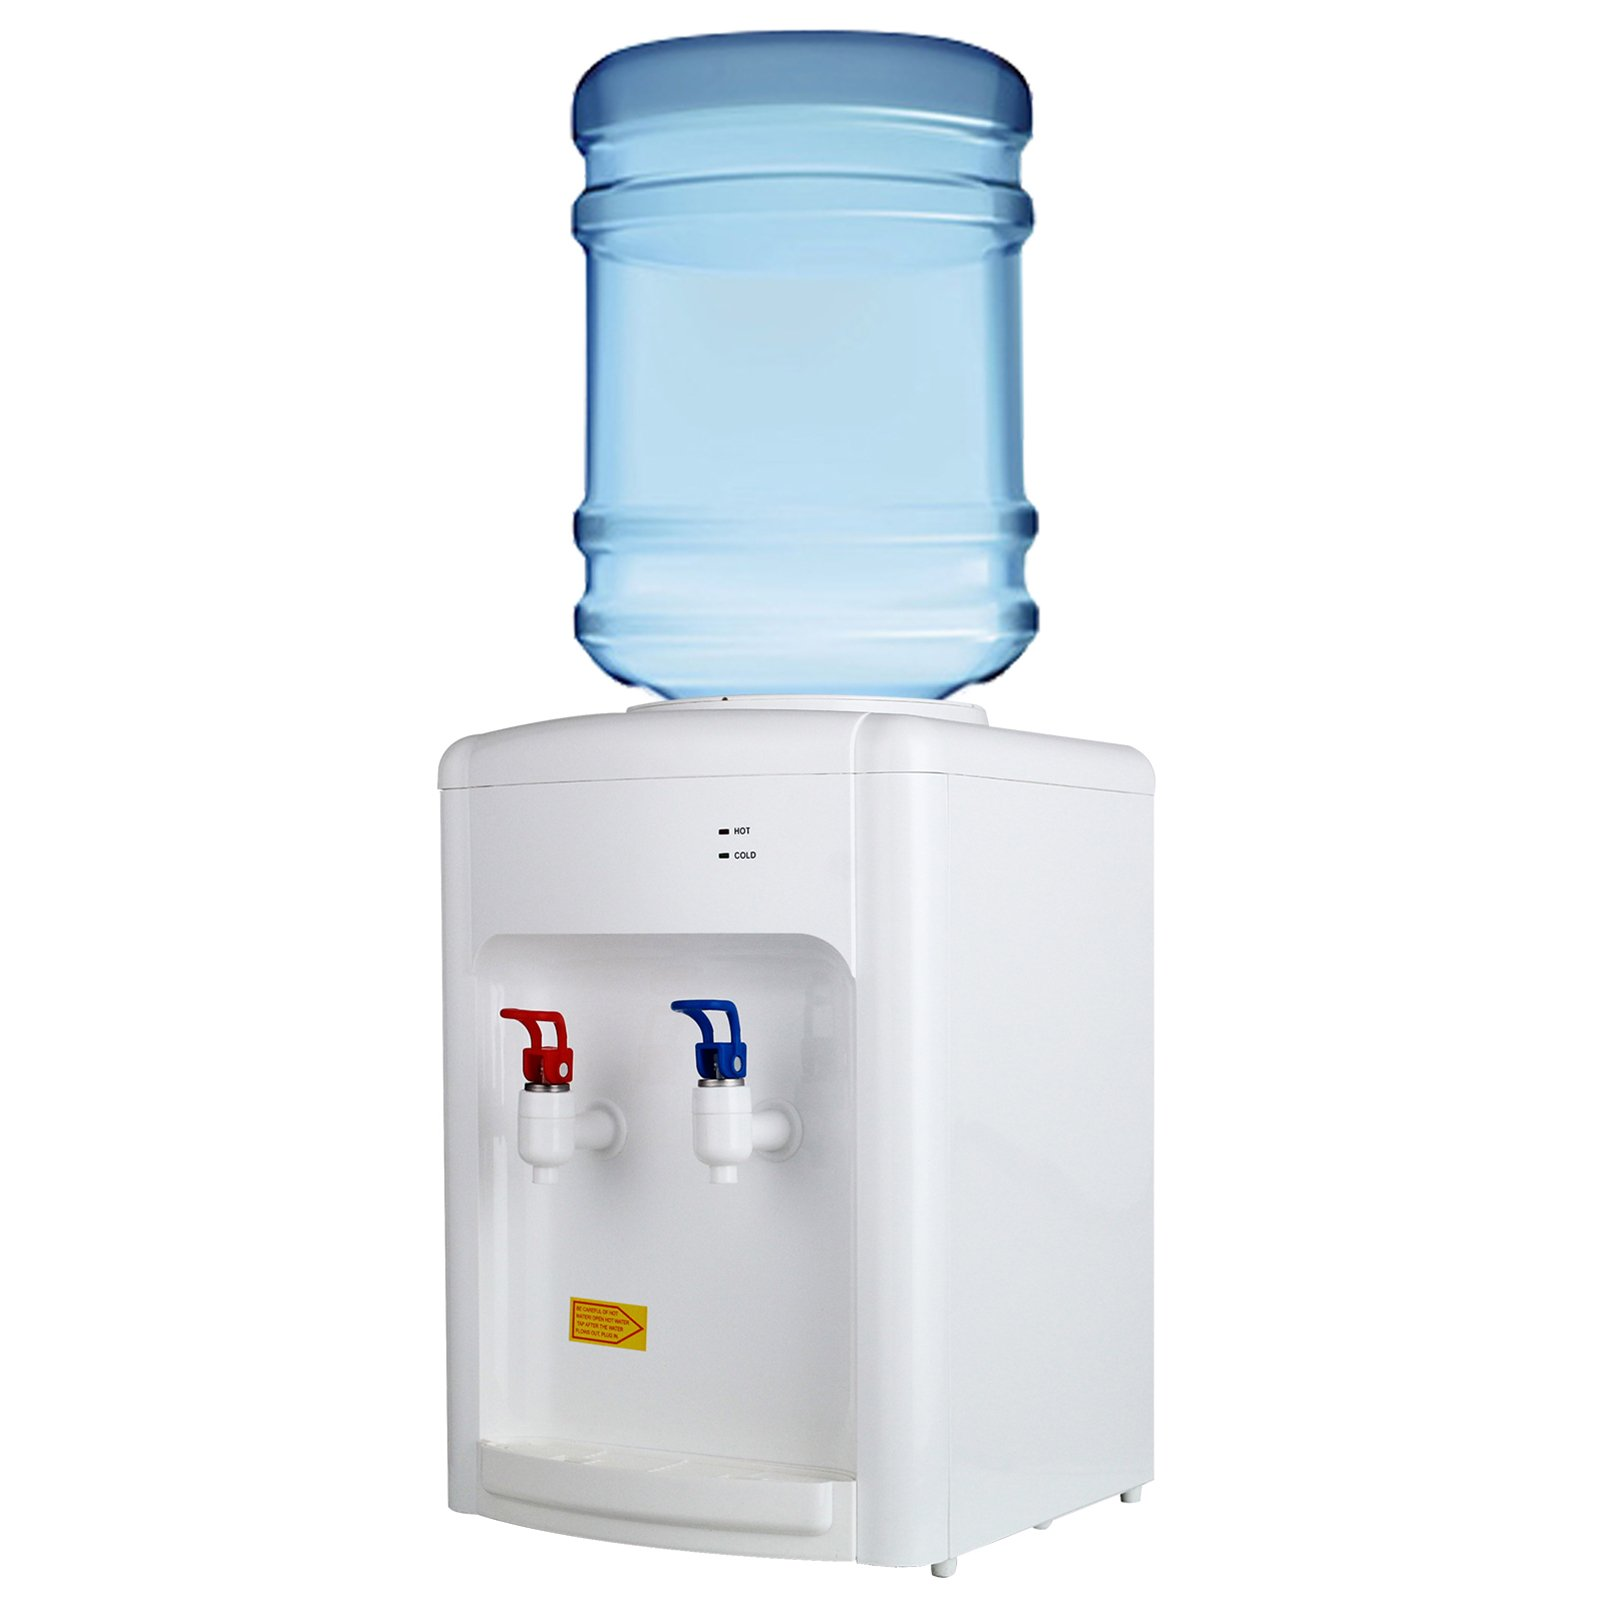 KUPPET 3-5 Gallon Countertop Water Cooler Dispenser-Hot & Cold Water, Idea For Home Office Use, White (16.14inch)